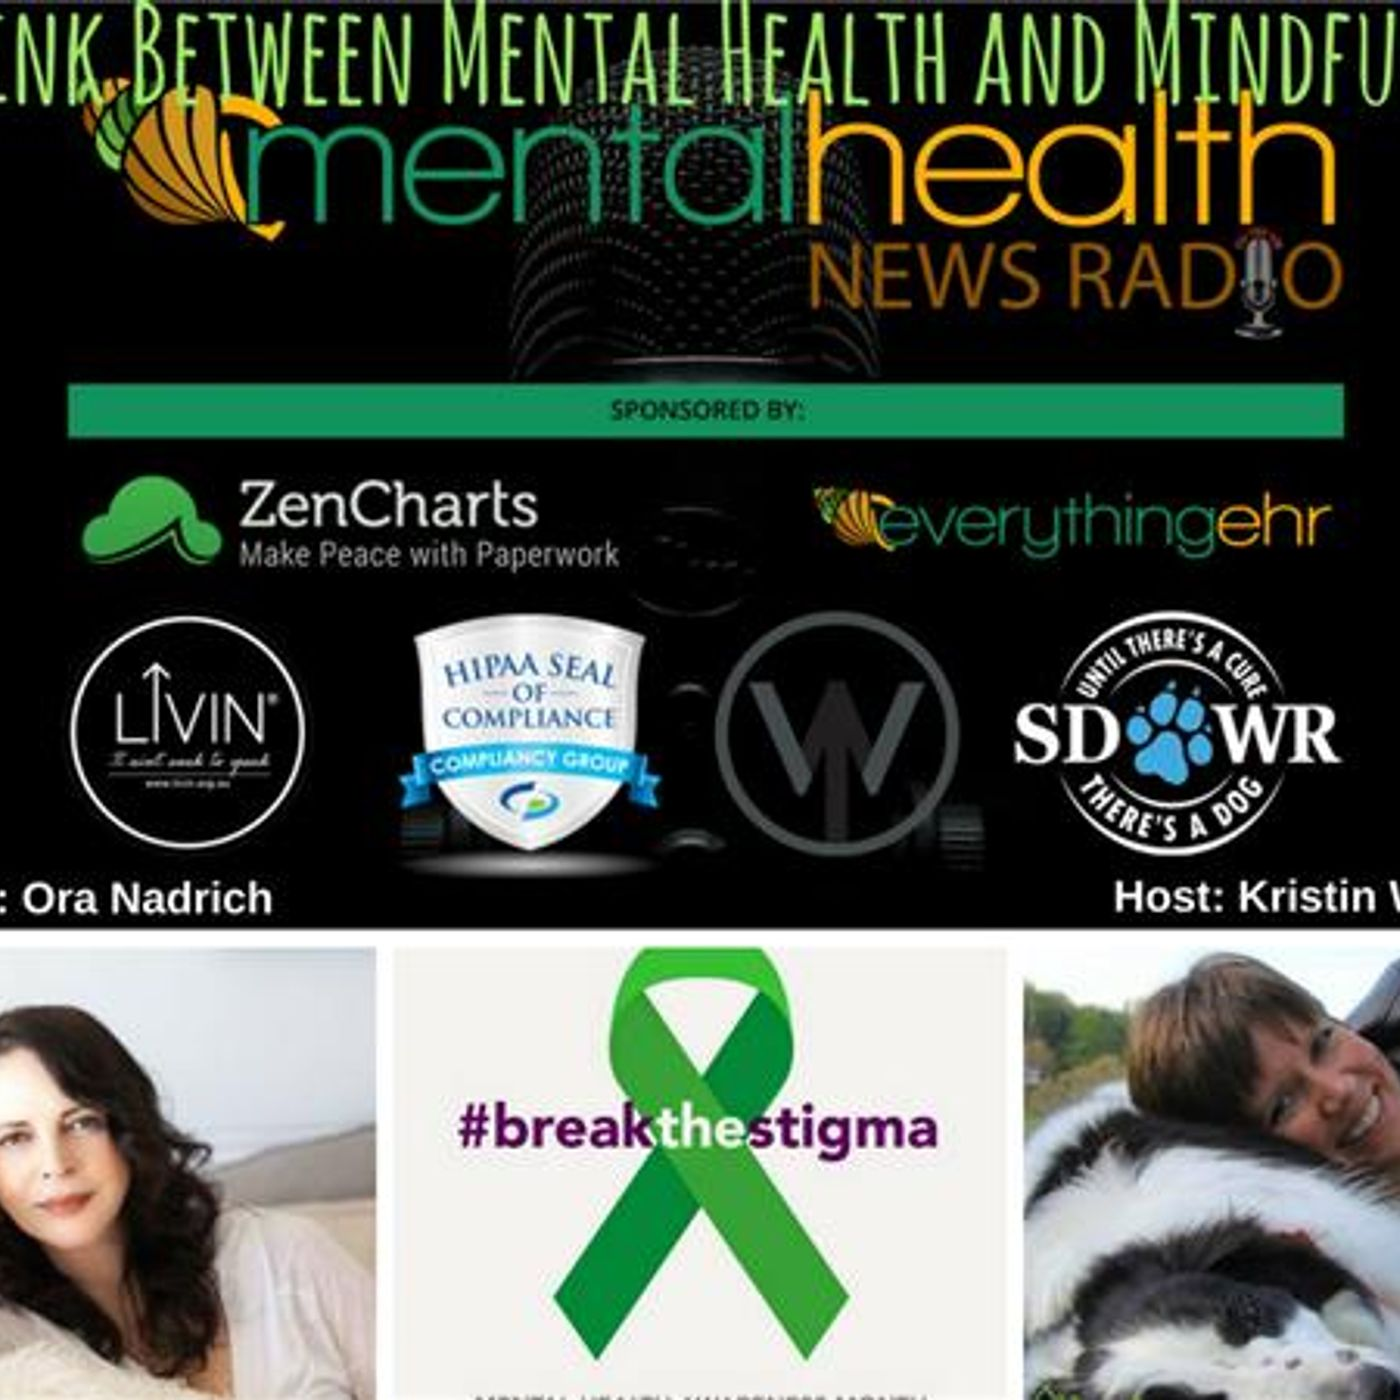 Mental Health News Radio - The Link Between Mental Health and Mindfulness with Ora Nadrich